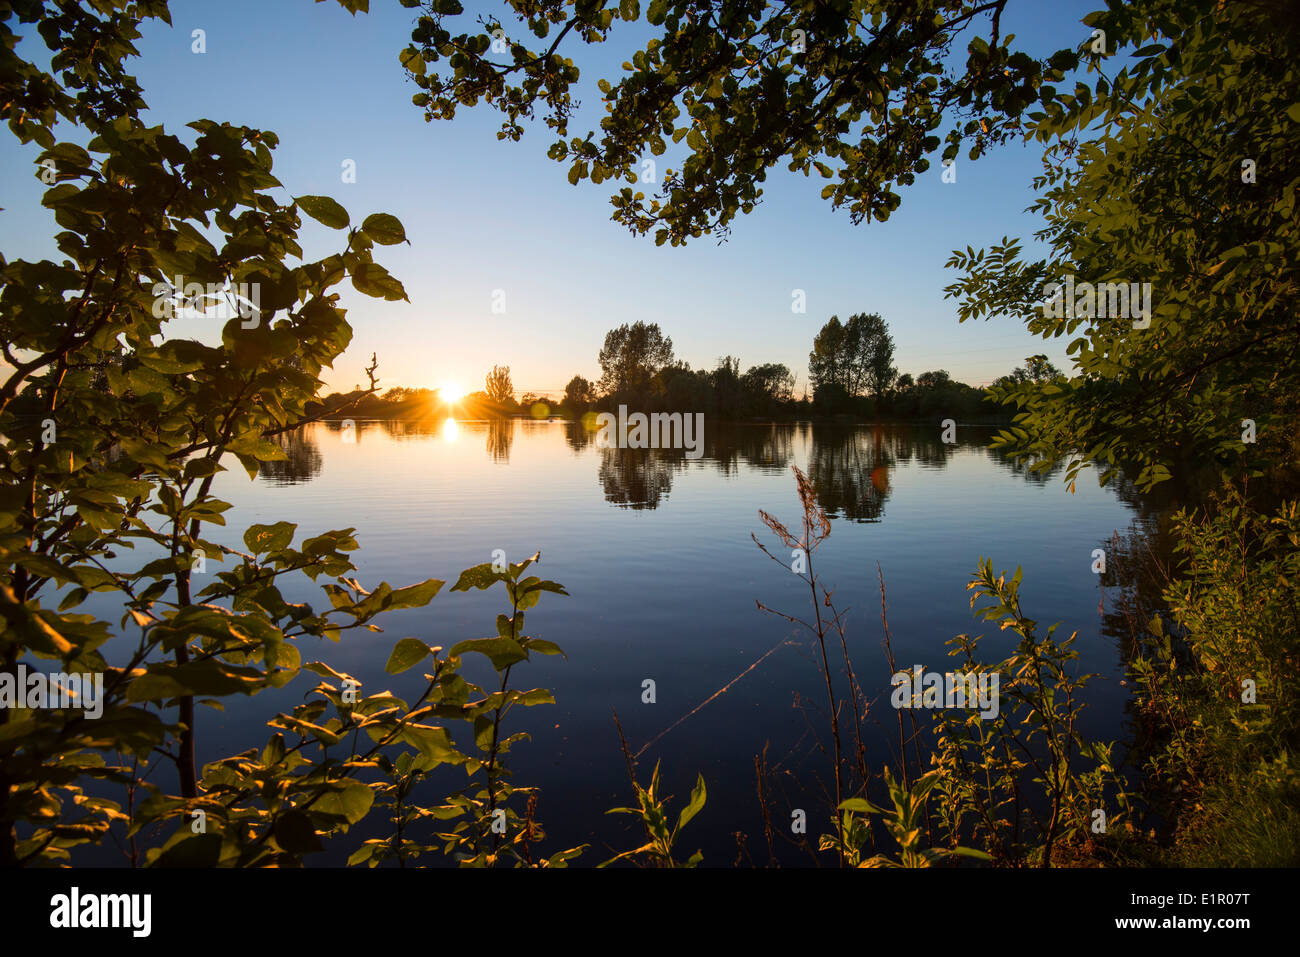 Dusk at St Chad's Water, in Church Wilne near Draycott in Derbyshire England UK - Stock Image